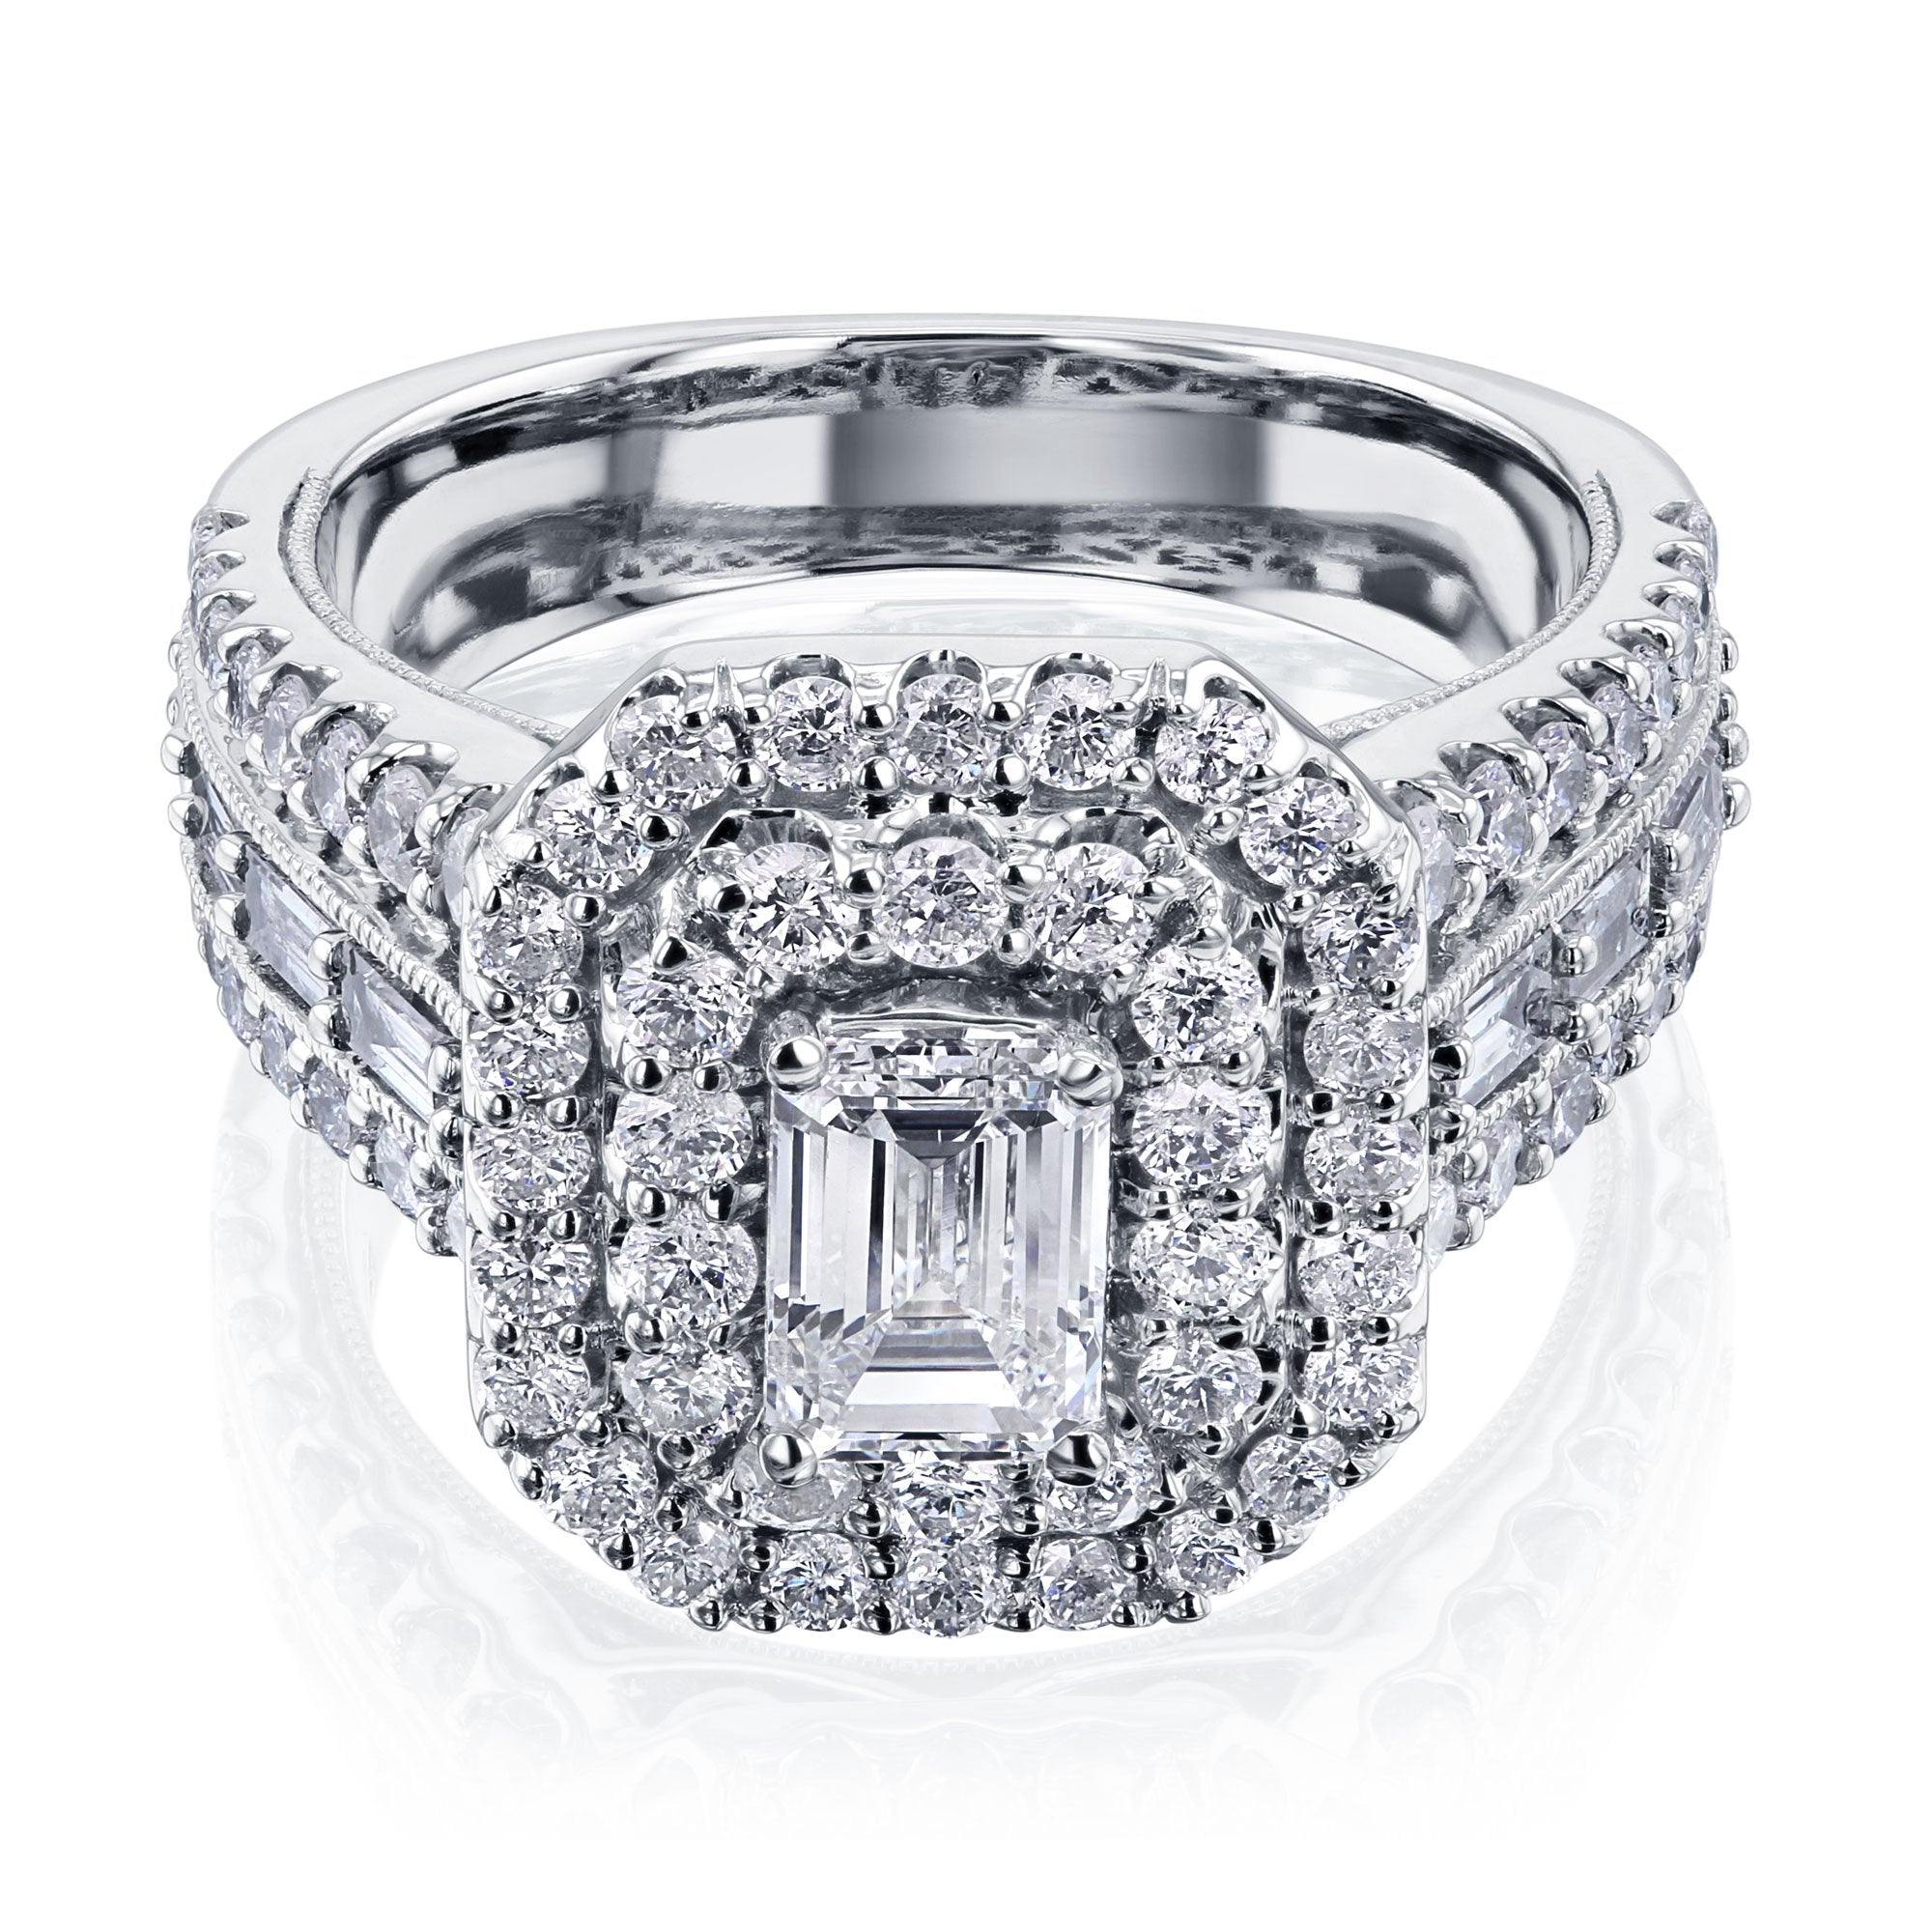 Promos Emerald Double Halo Diamond Cluster Ring - 11.0